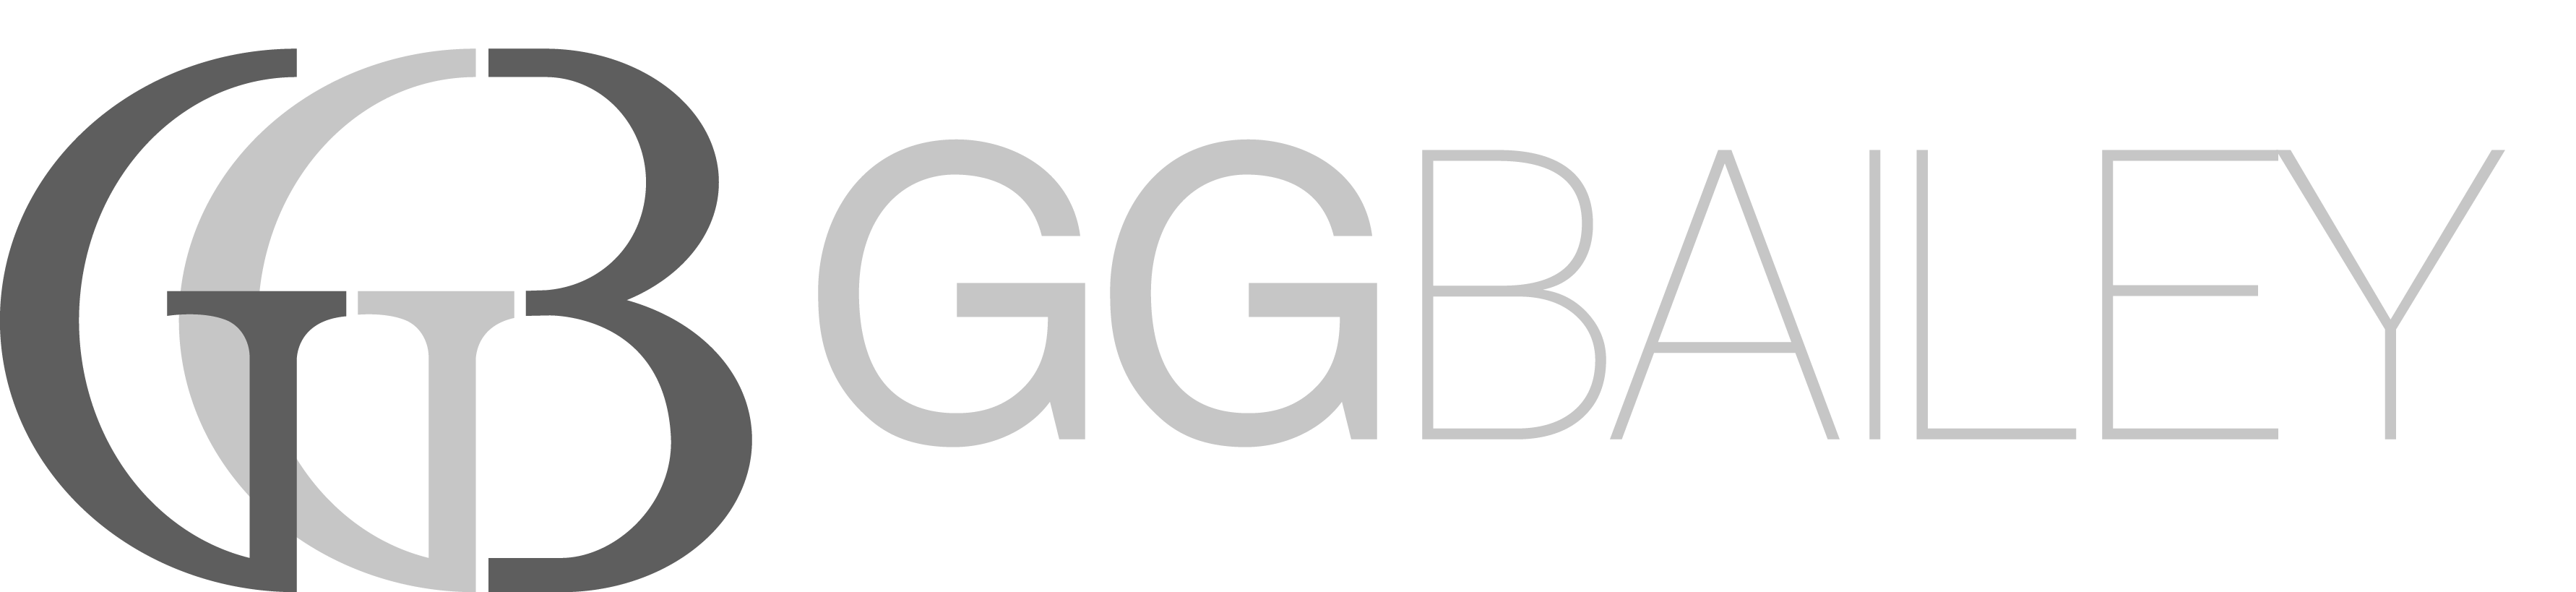 GGBAILEY_LOGO.png